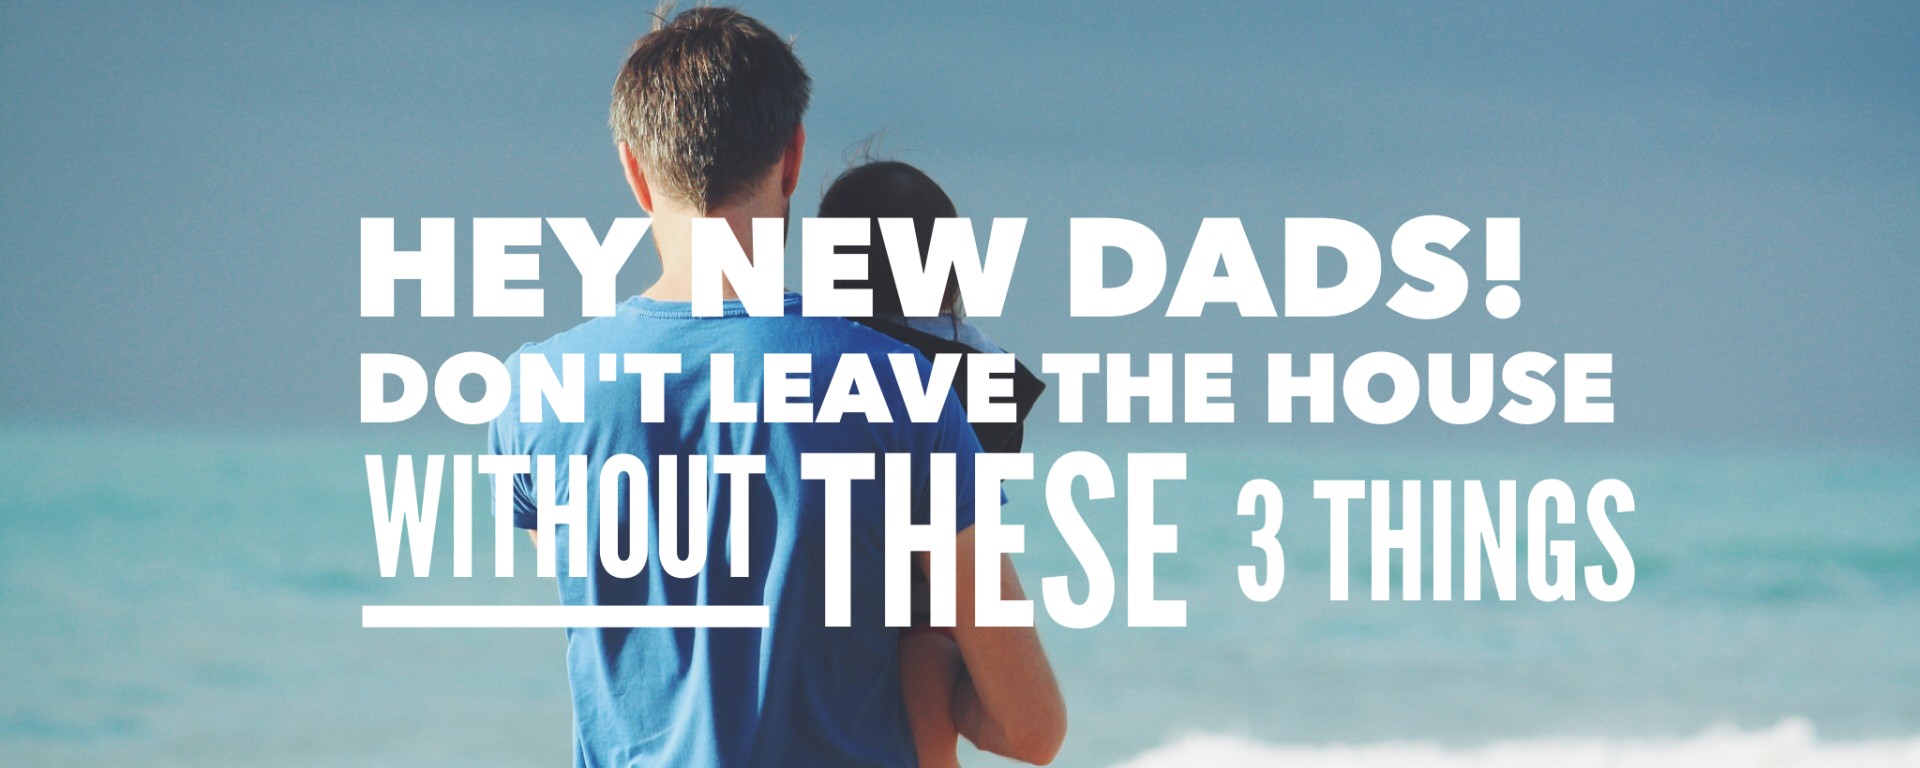 new dads, don't leave the house, new father, advice, help i'm a dad, becoming a father, tips,